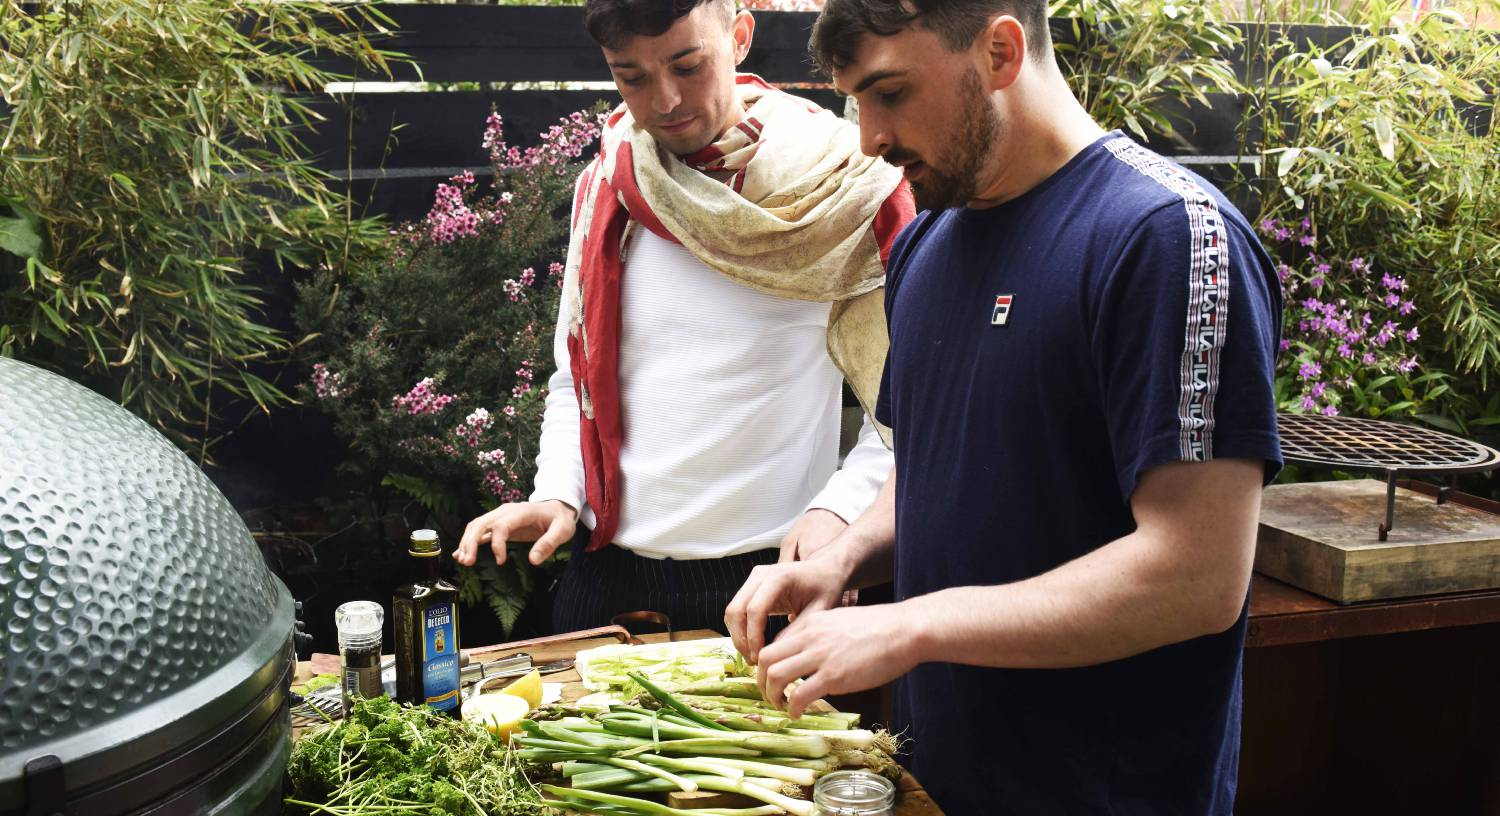 Food & Fun: Cooking in the great outdoors